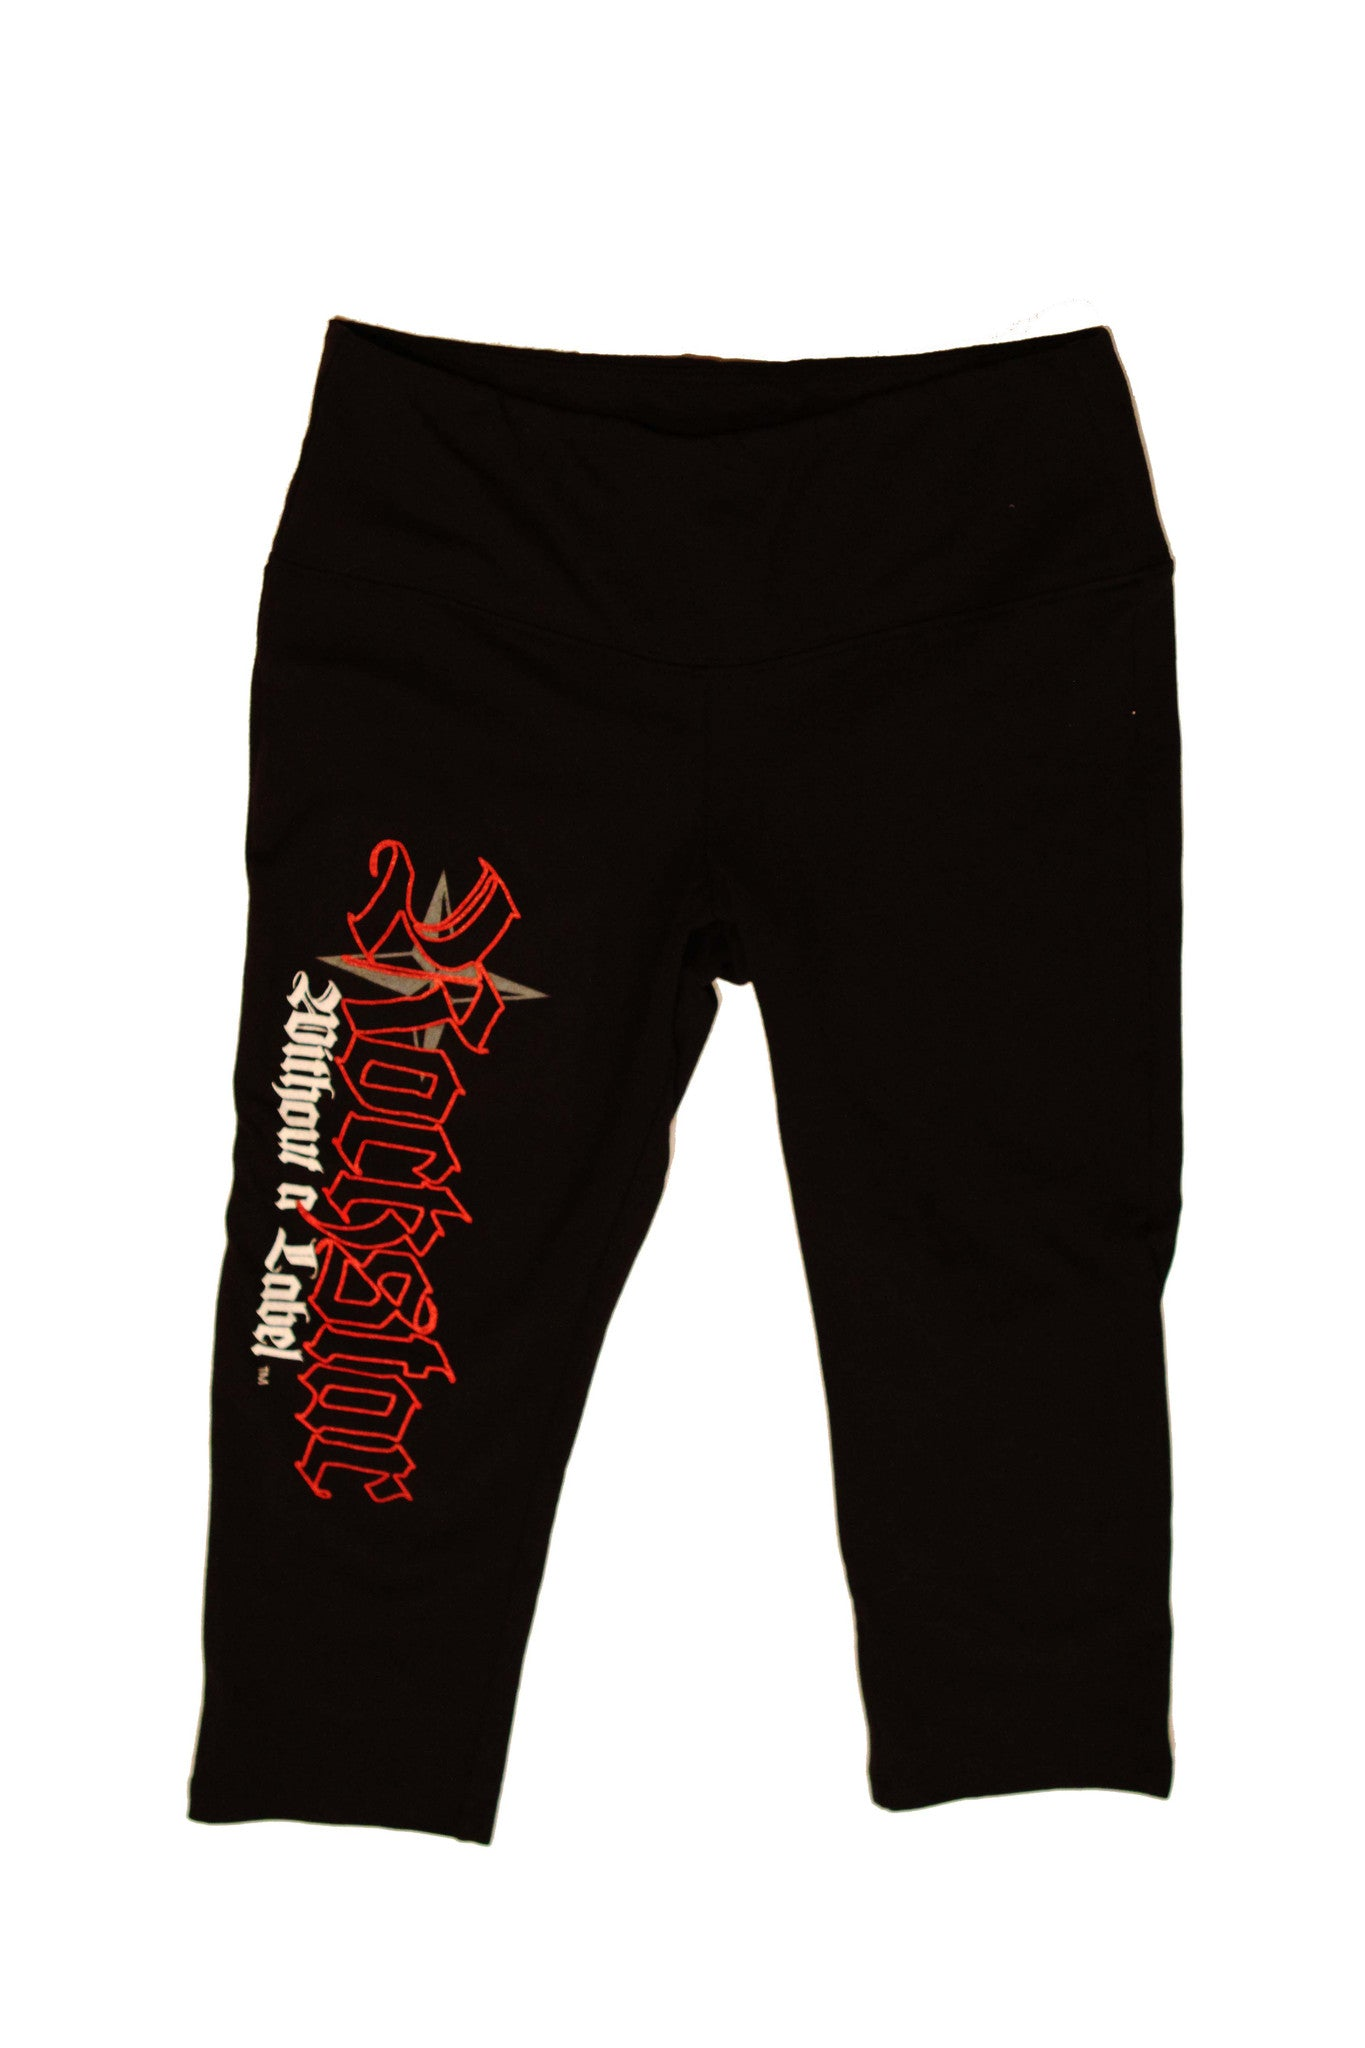 Yoga/Fitness Capri Pant Knee/Length with Red Rockstar Logo